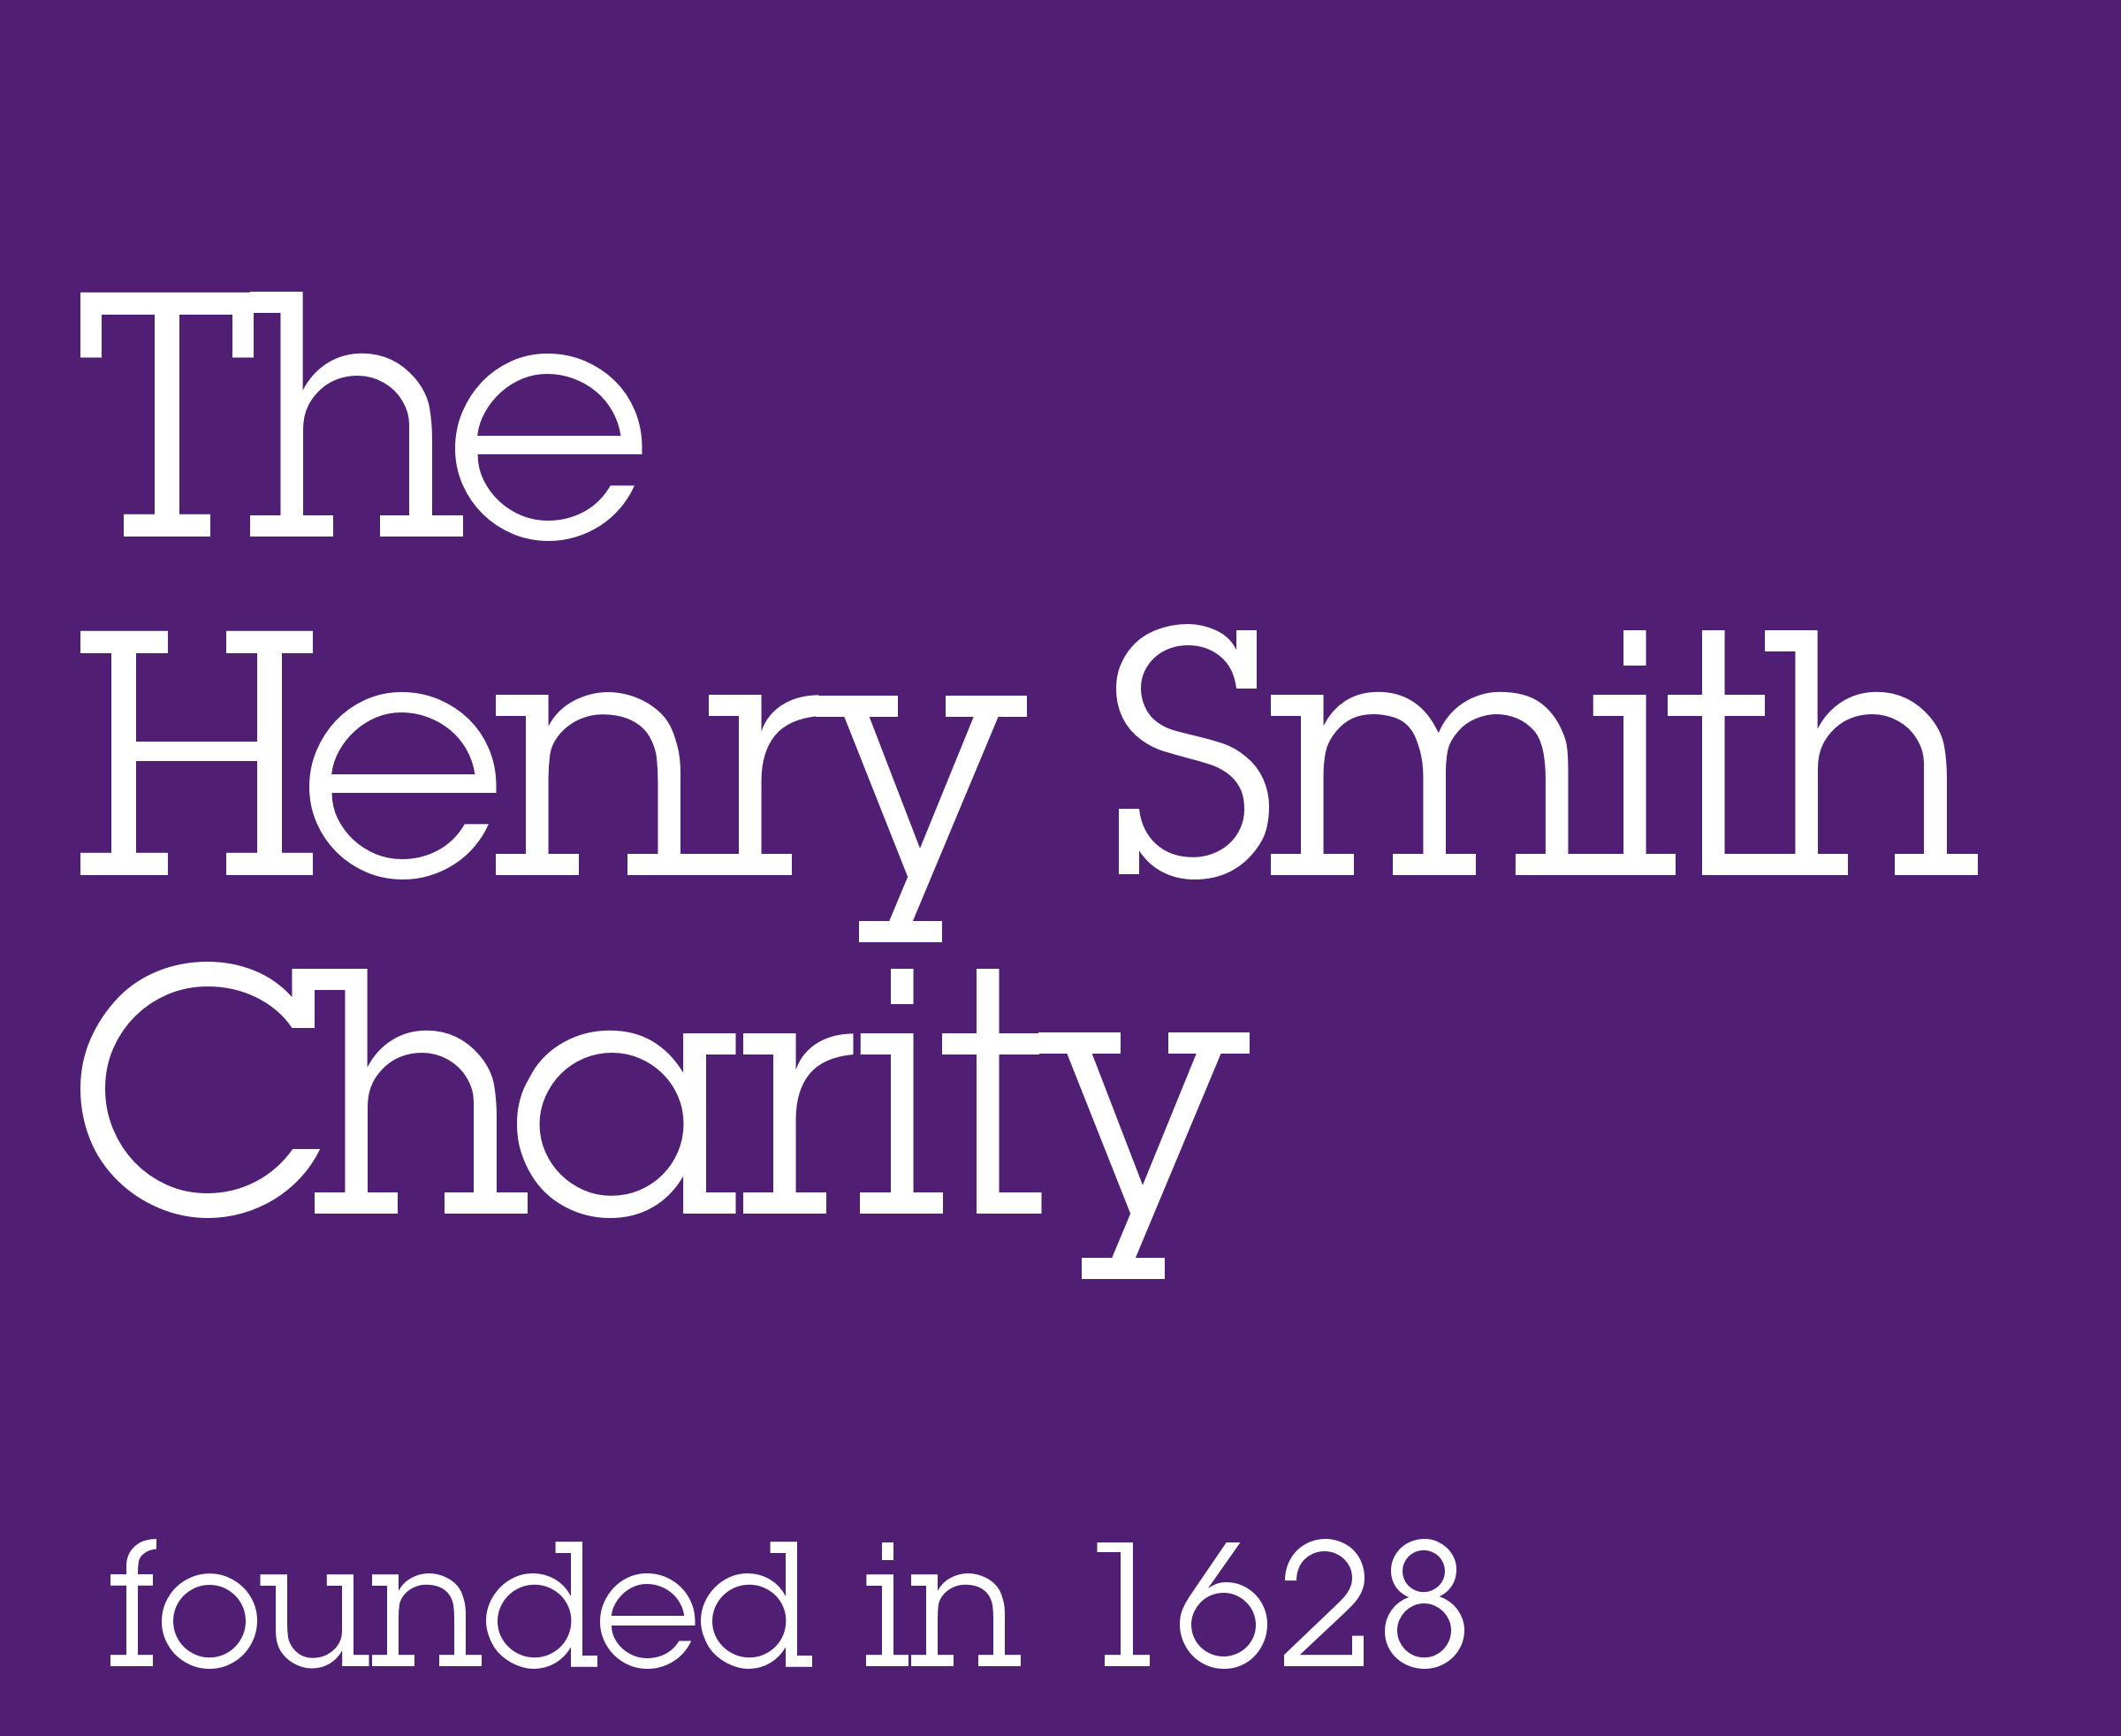 Henry Smith Charity logo